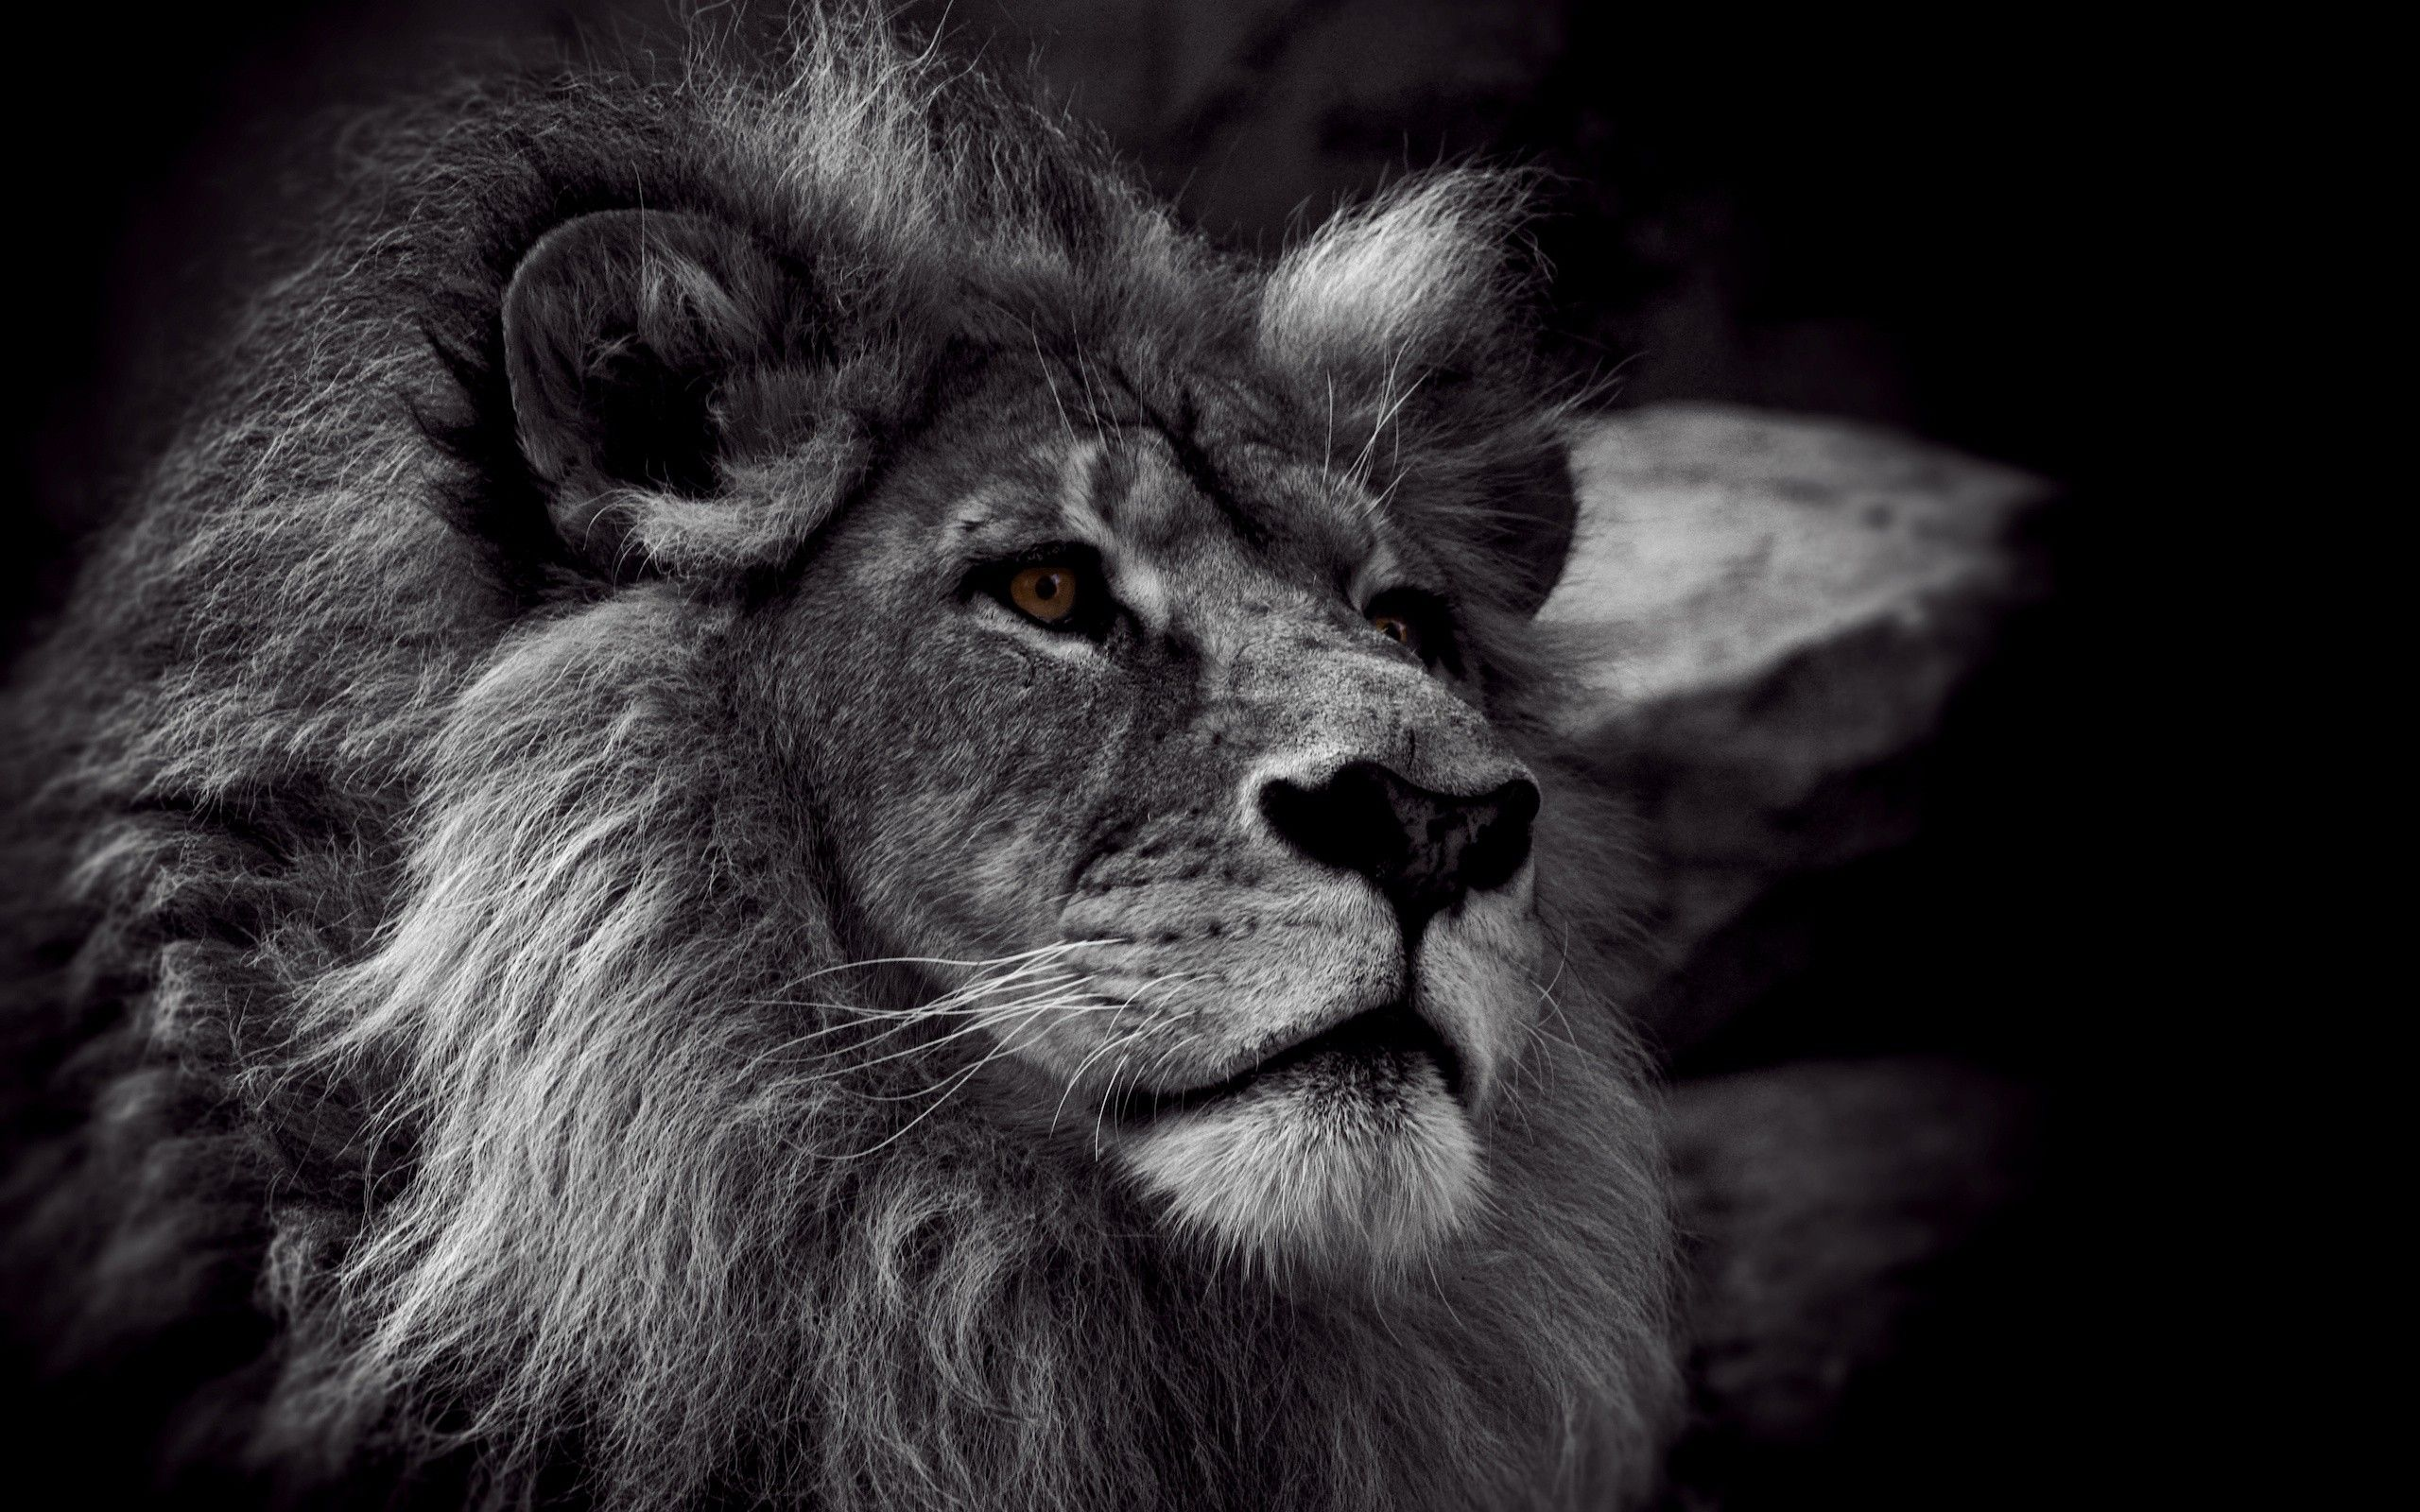 Lion Black And White Lion Wallpaper Black And White Lion Lion Photography